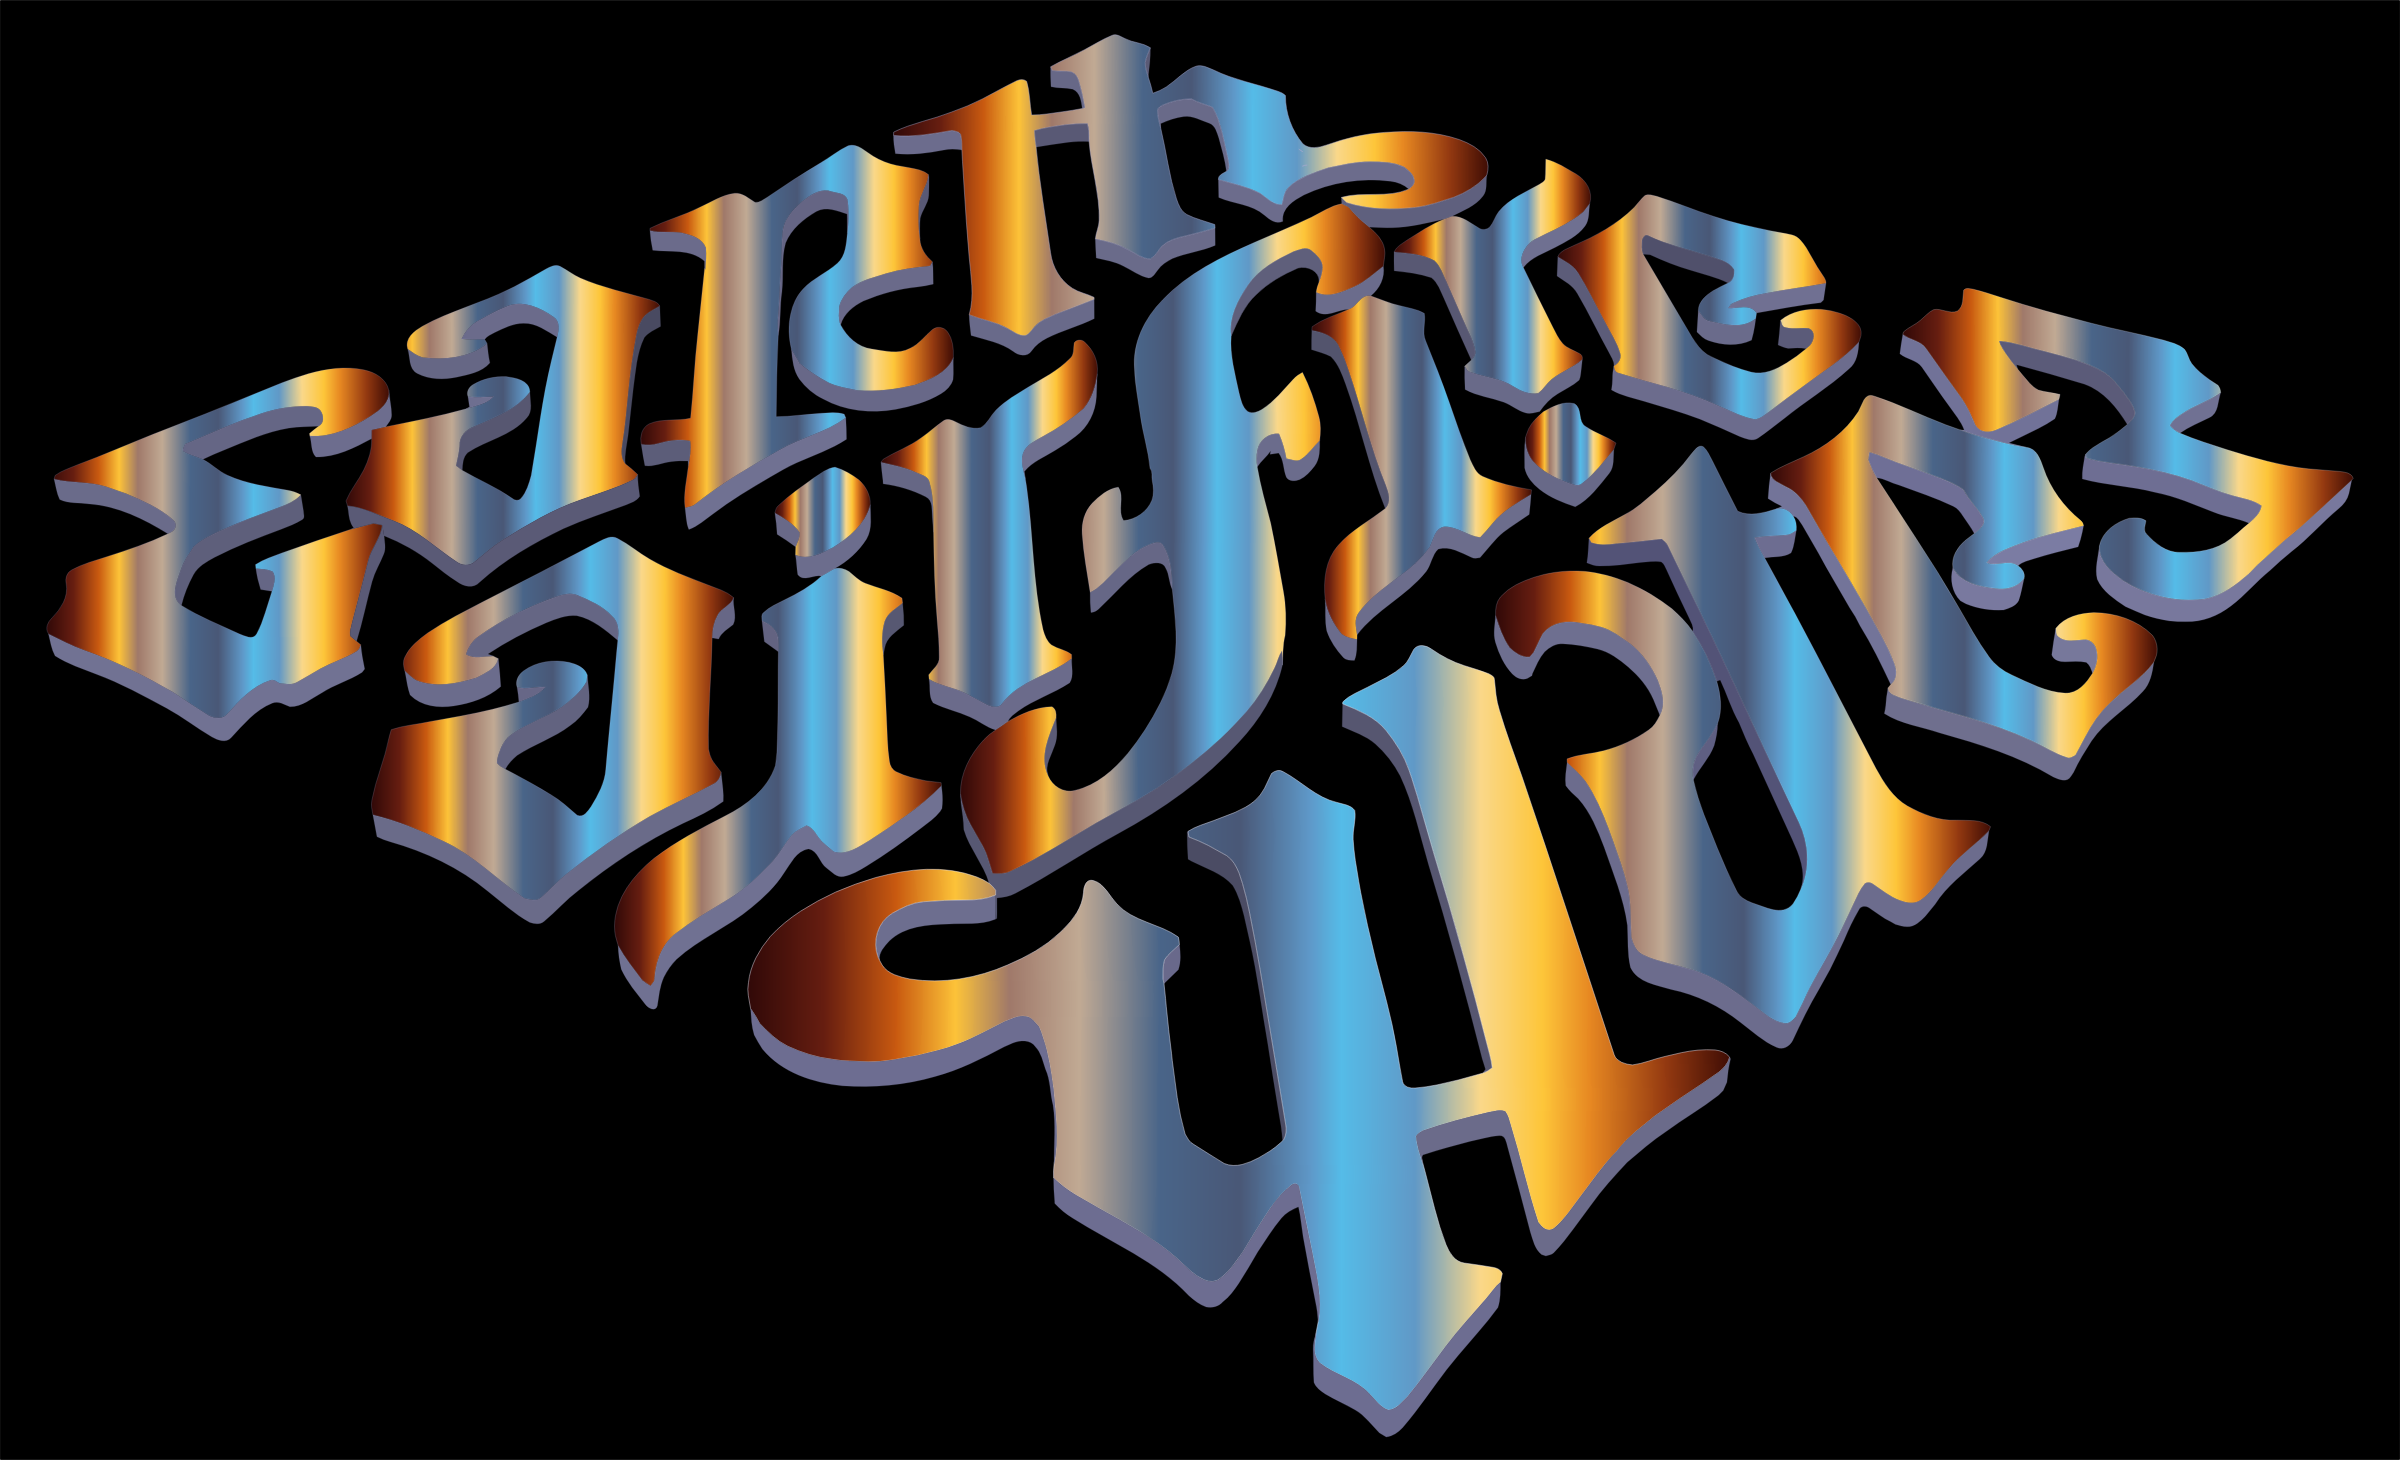 Earth Air Fire Water Ambigram 2 by GDJ